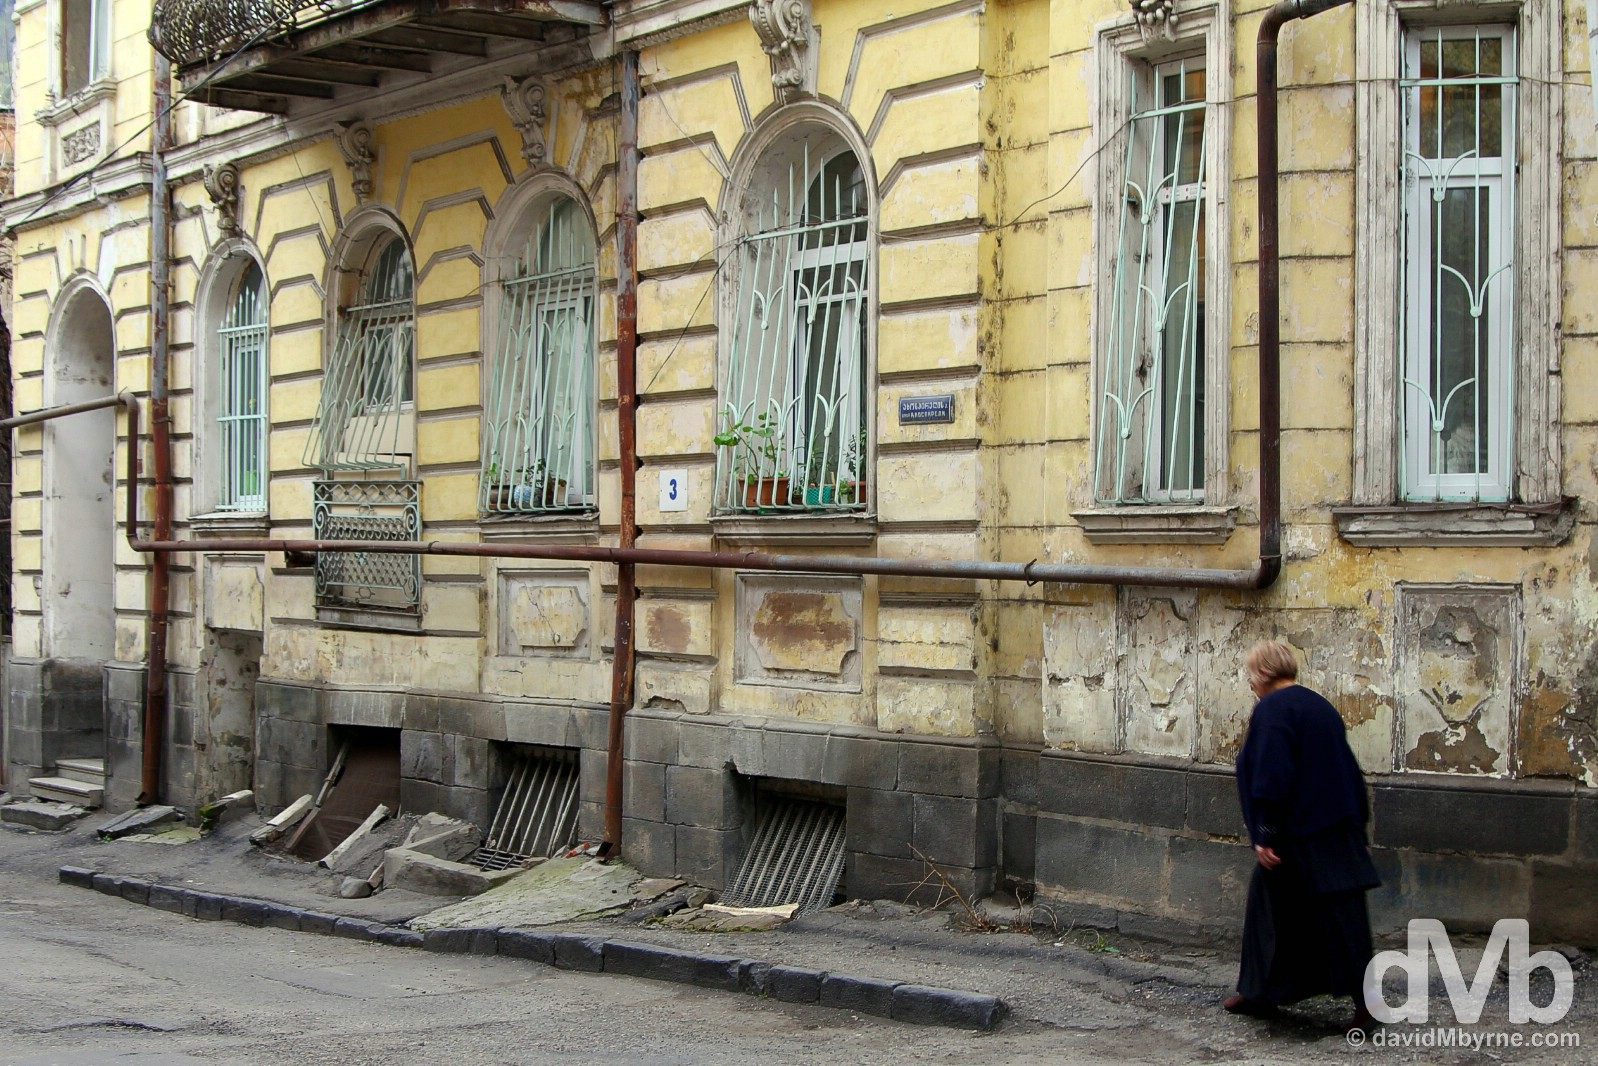 Walking past a dilapidated building in the Old Town of Tbilisi, Georgia. March 19, 2015.